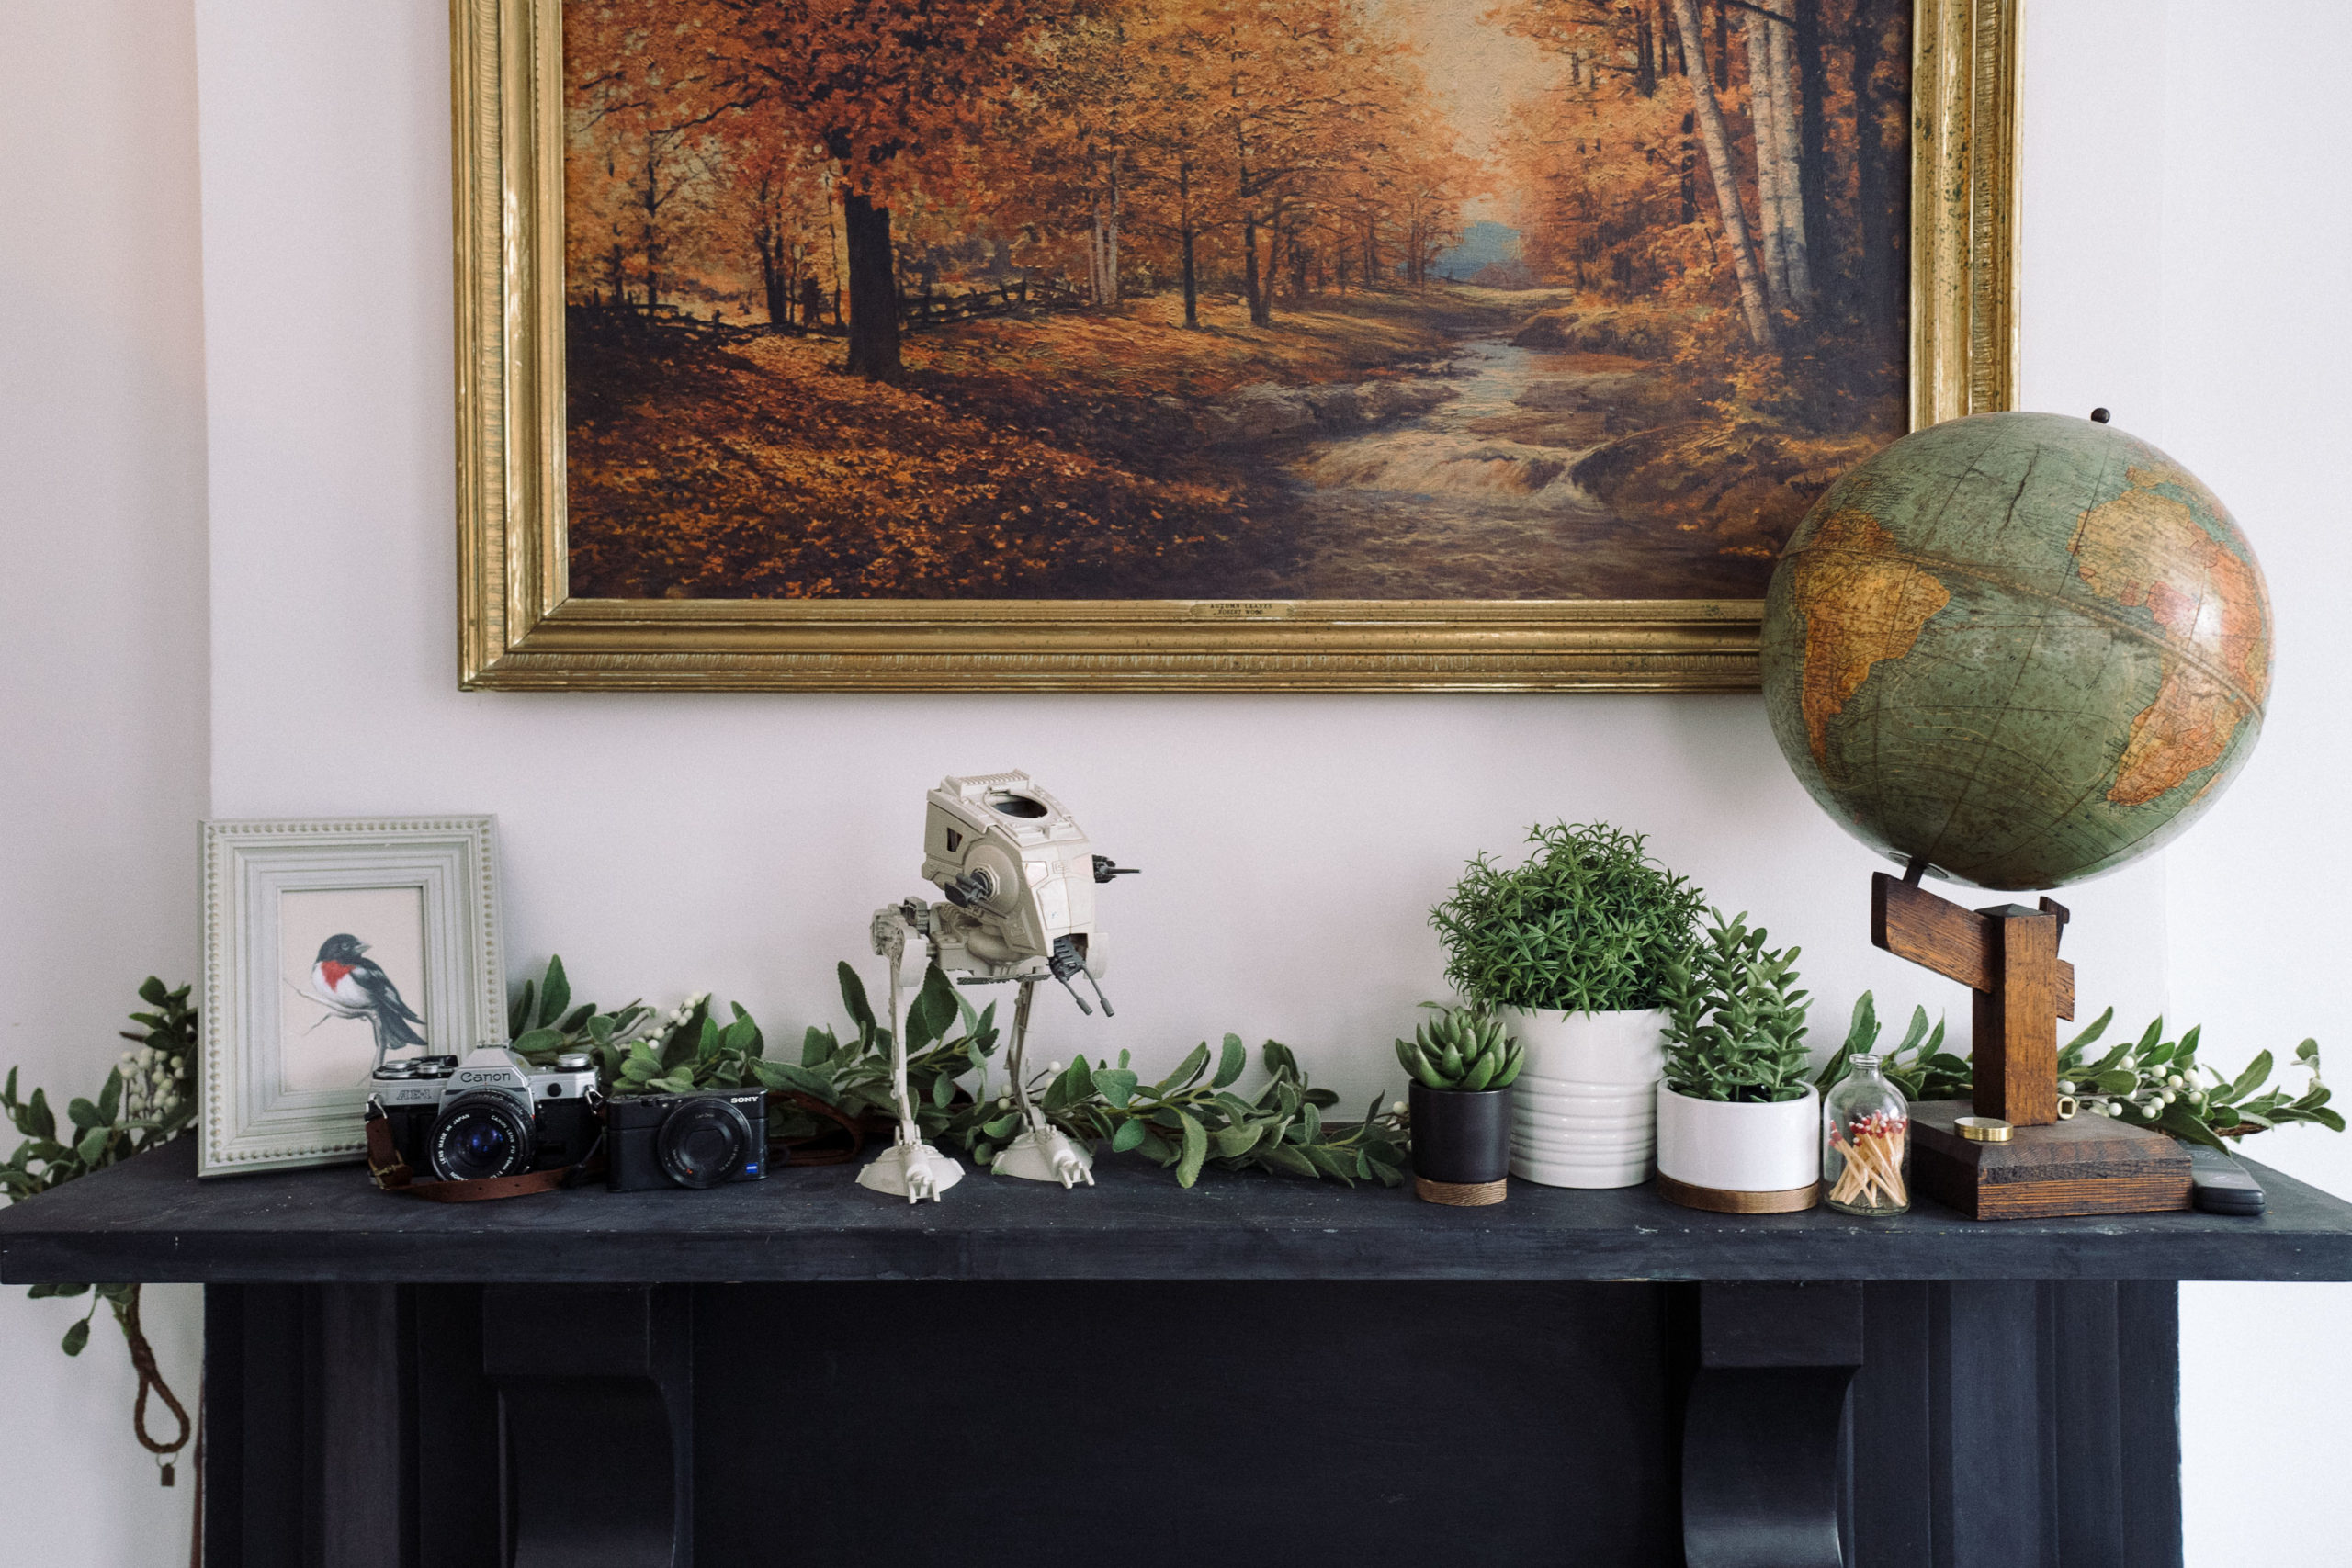 A mantle with some Christmas greenery that is fake